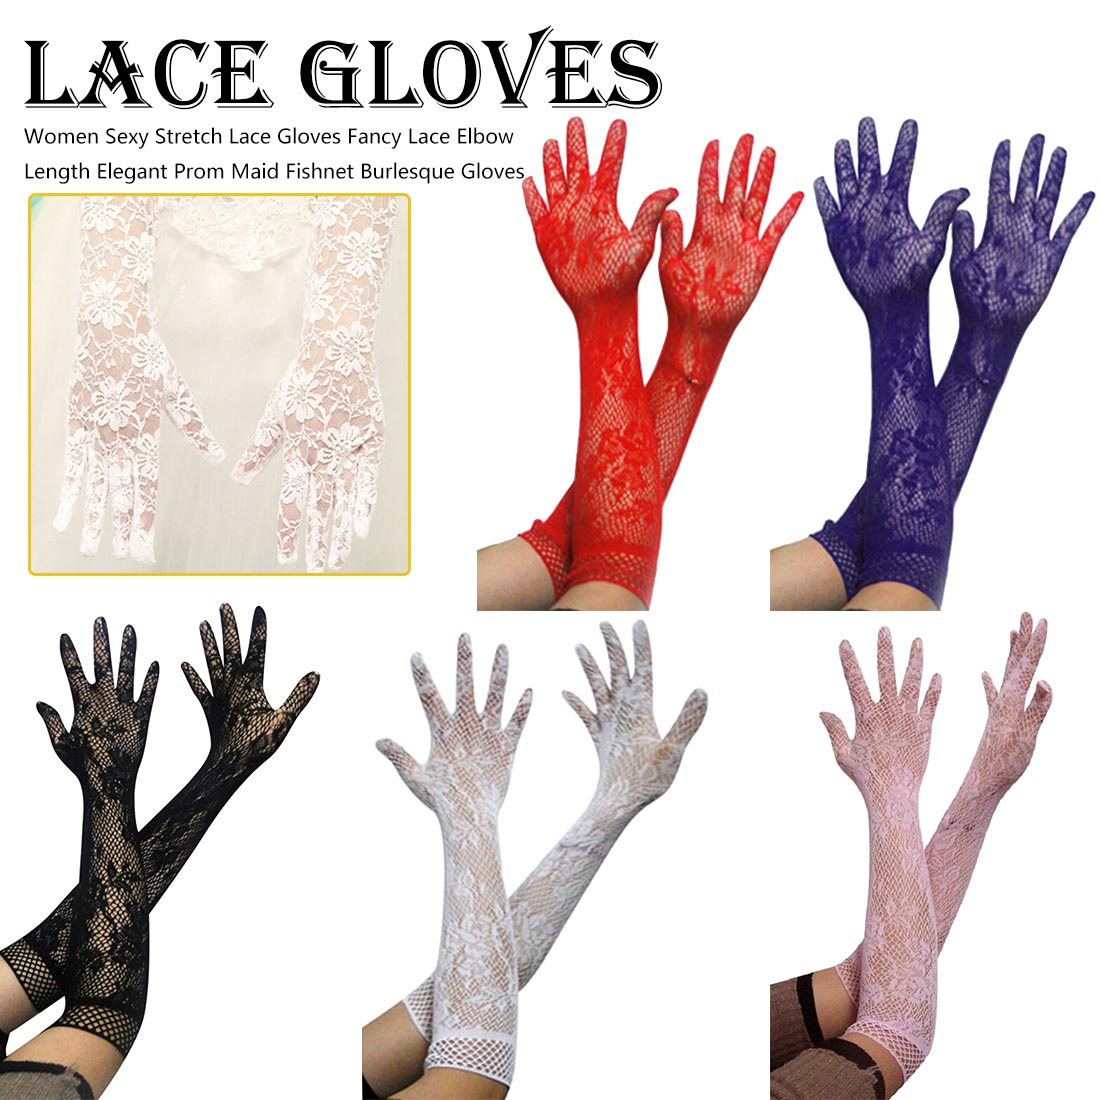 Lace Gloves Maid Fishnet Stretch Fancy Elegant Sexy Elbow Length Women Burlesque